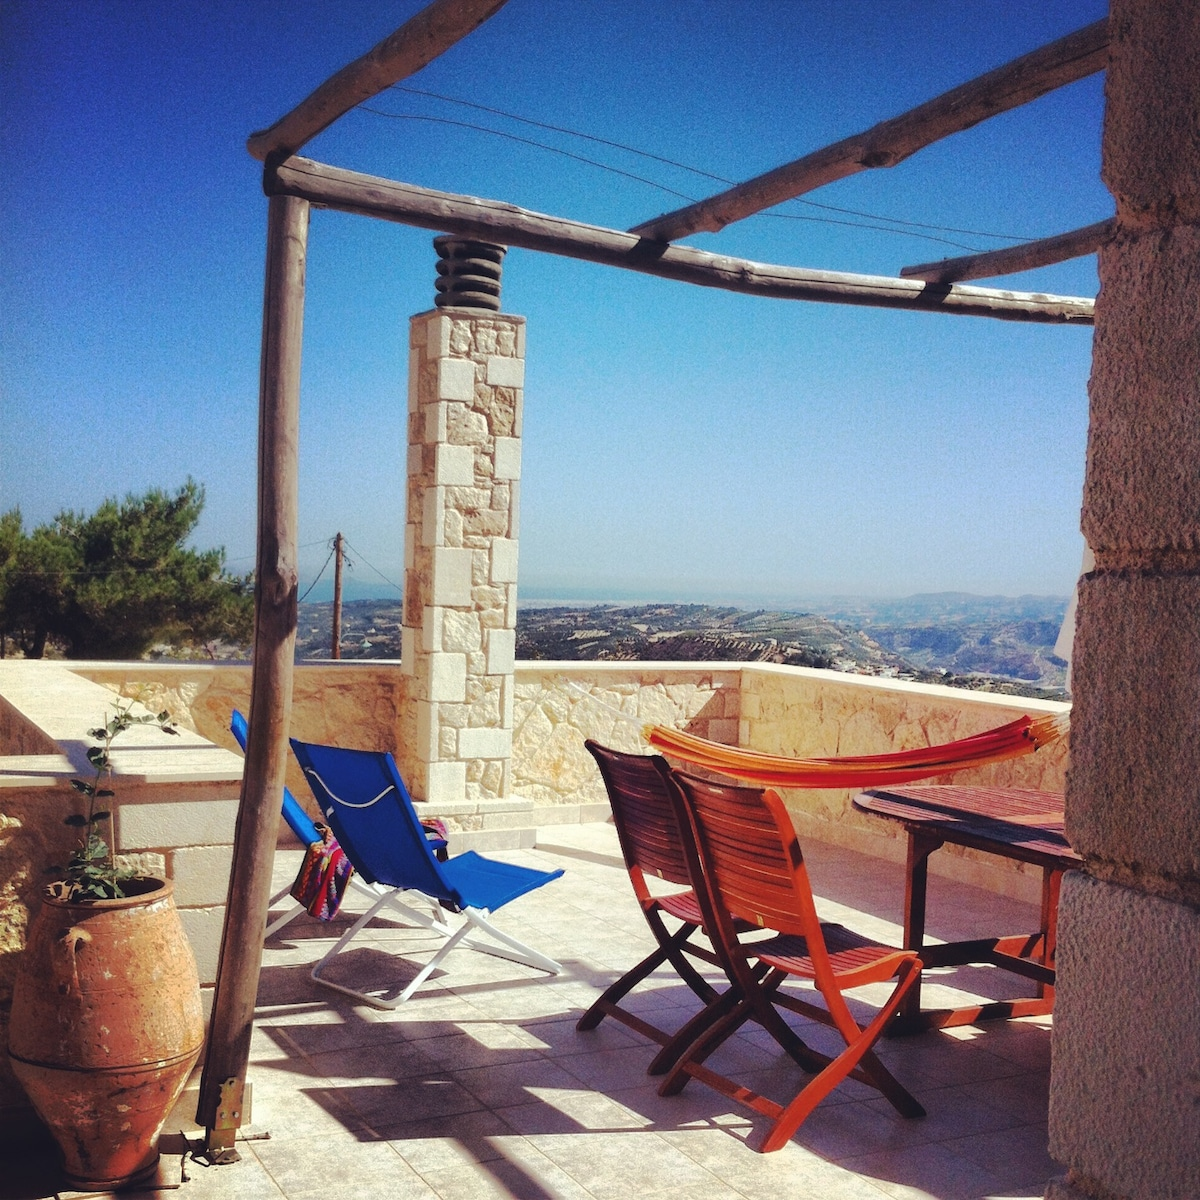 The upstairs terrace - great spot to relax and drink in the view